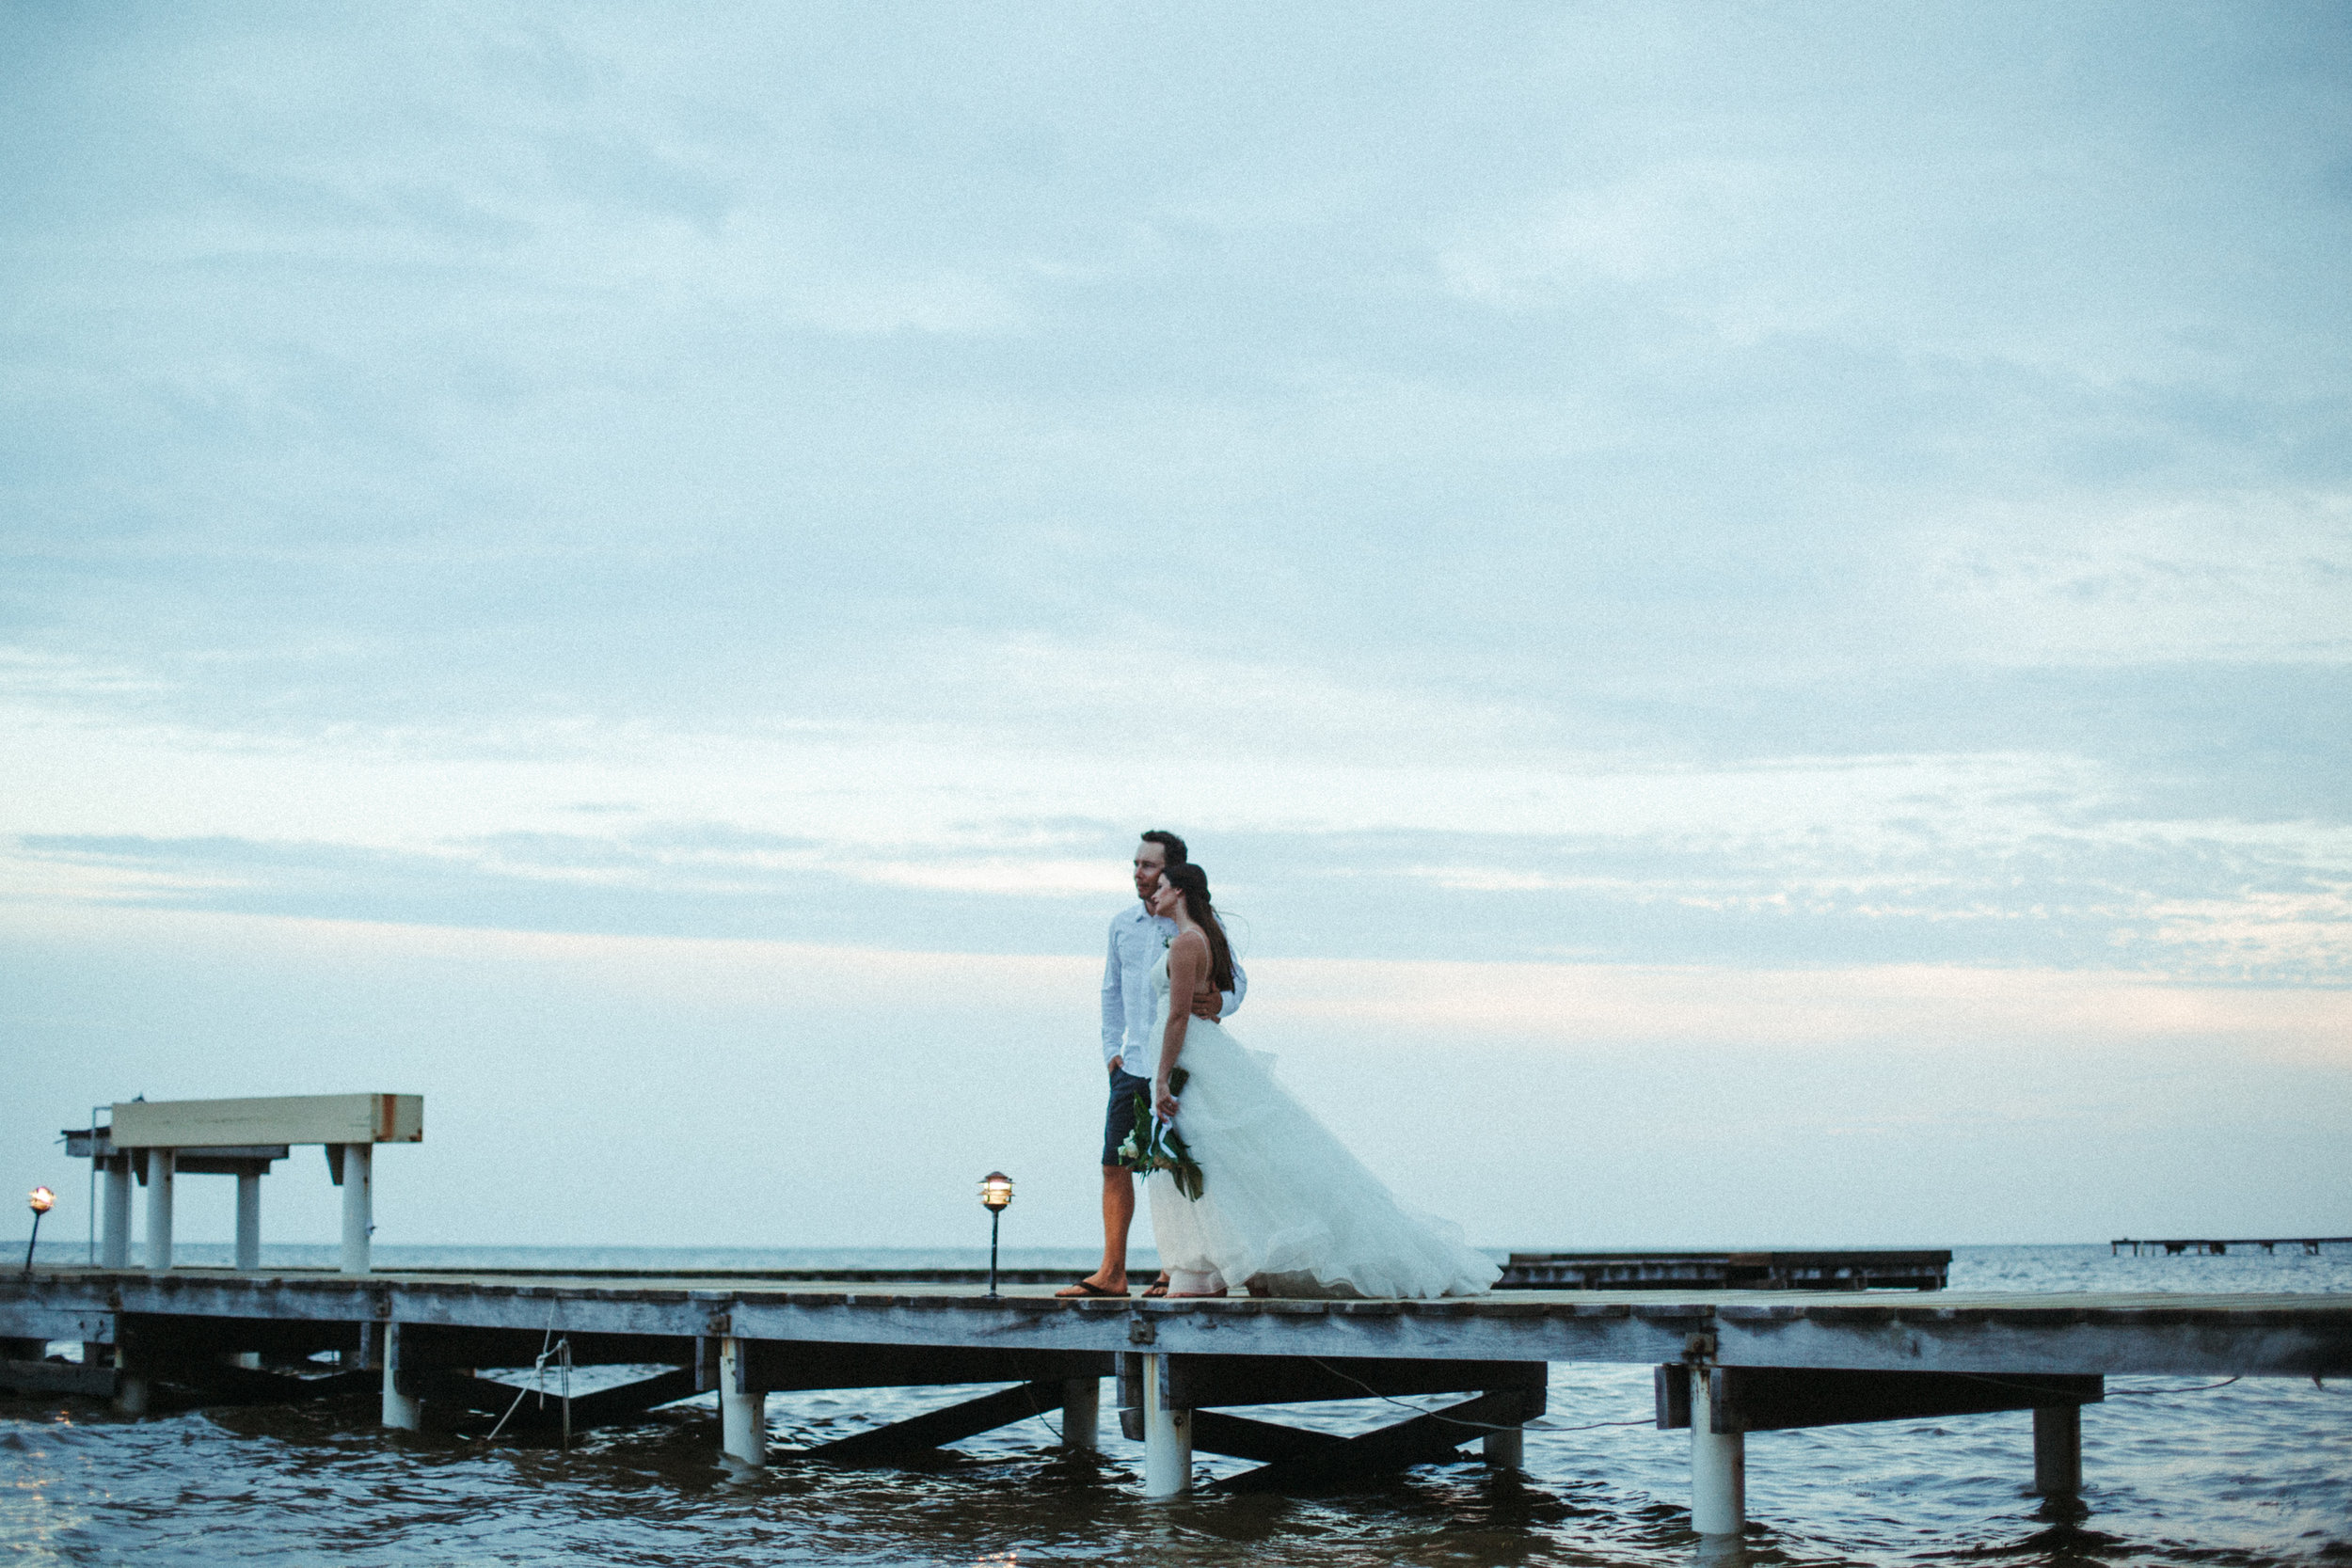 san-pescador-belize-wedding-christinemariephoto-j-k-148.jpg